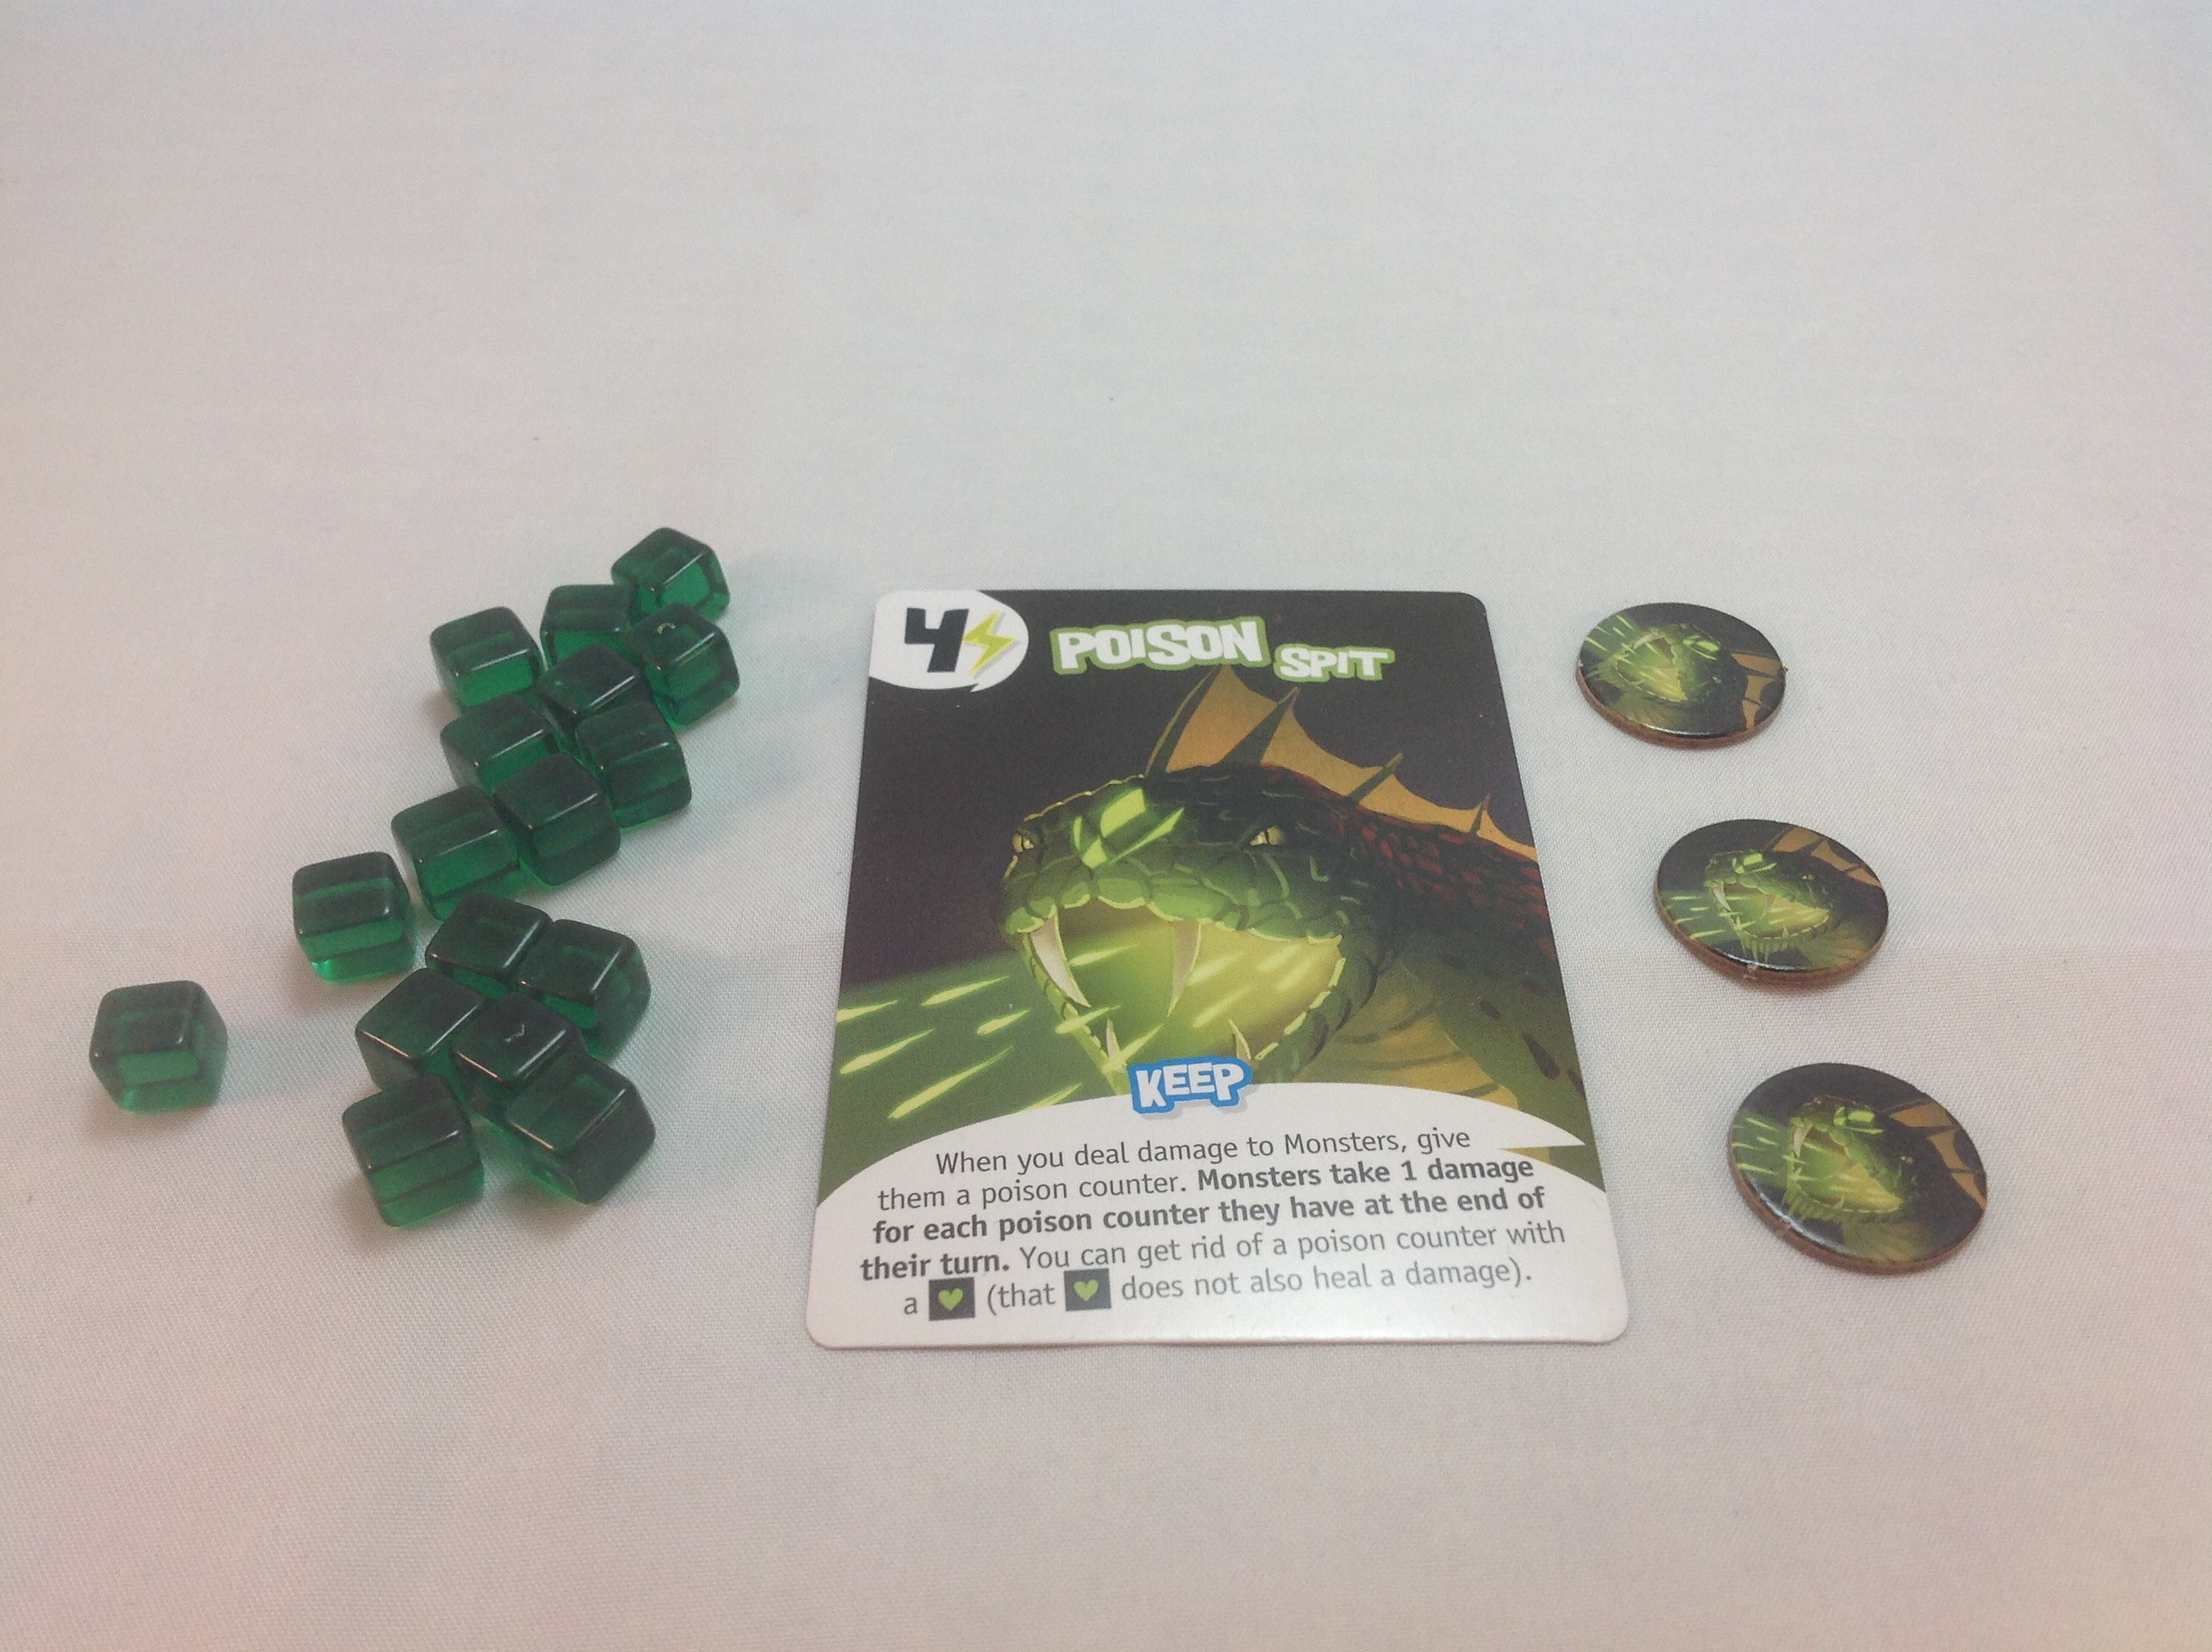 Energy cubes and poison counters.